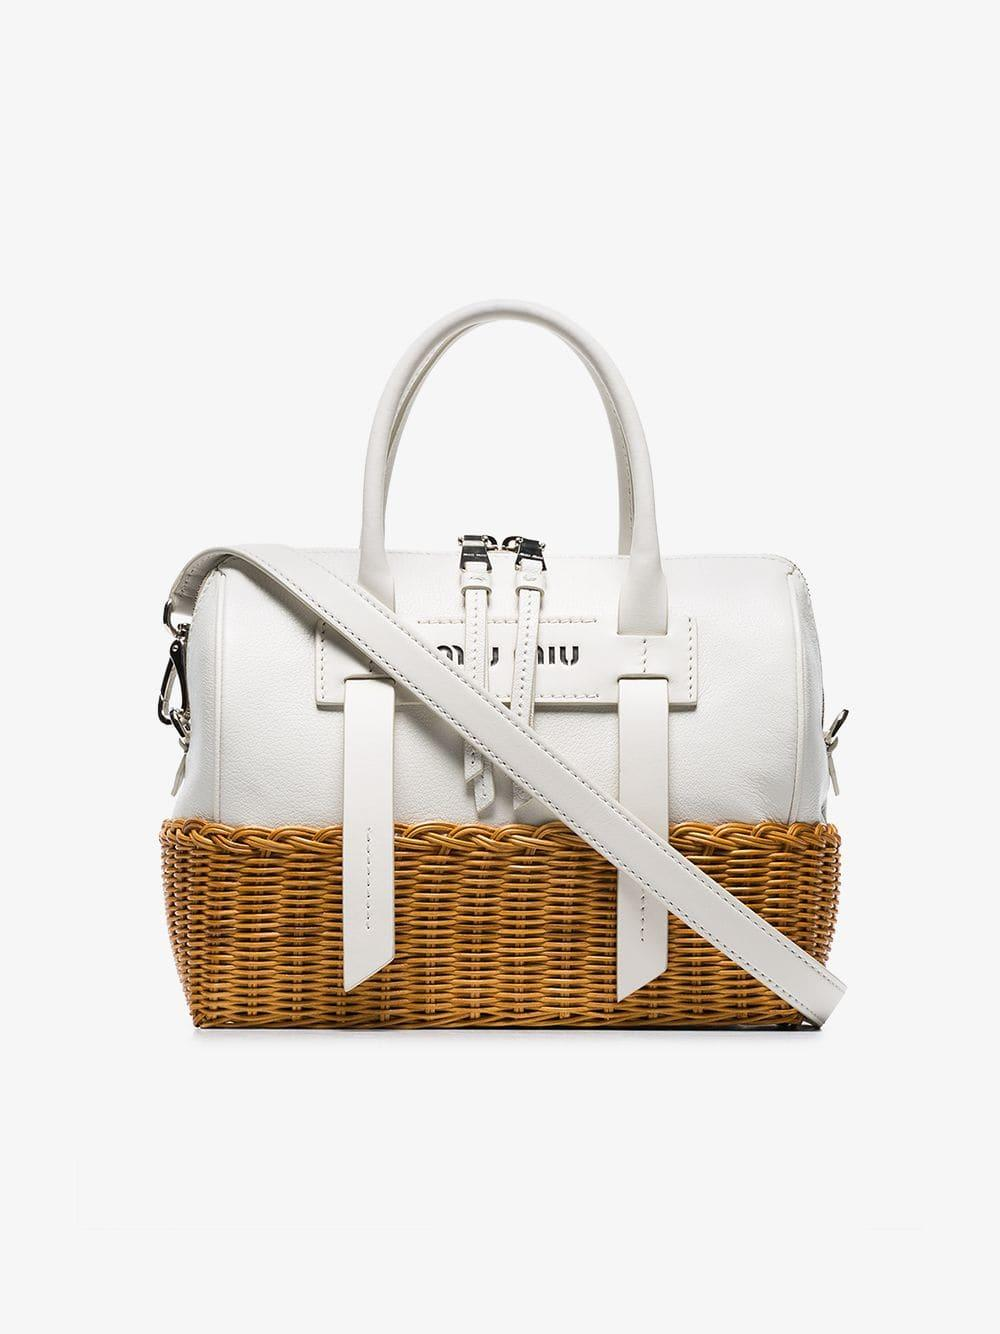 Miu Miu - White Wicker And Madras Bag - Lyst. View fullscreen f8e97b7068fb1